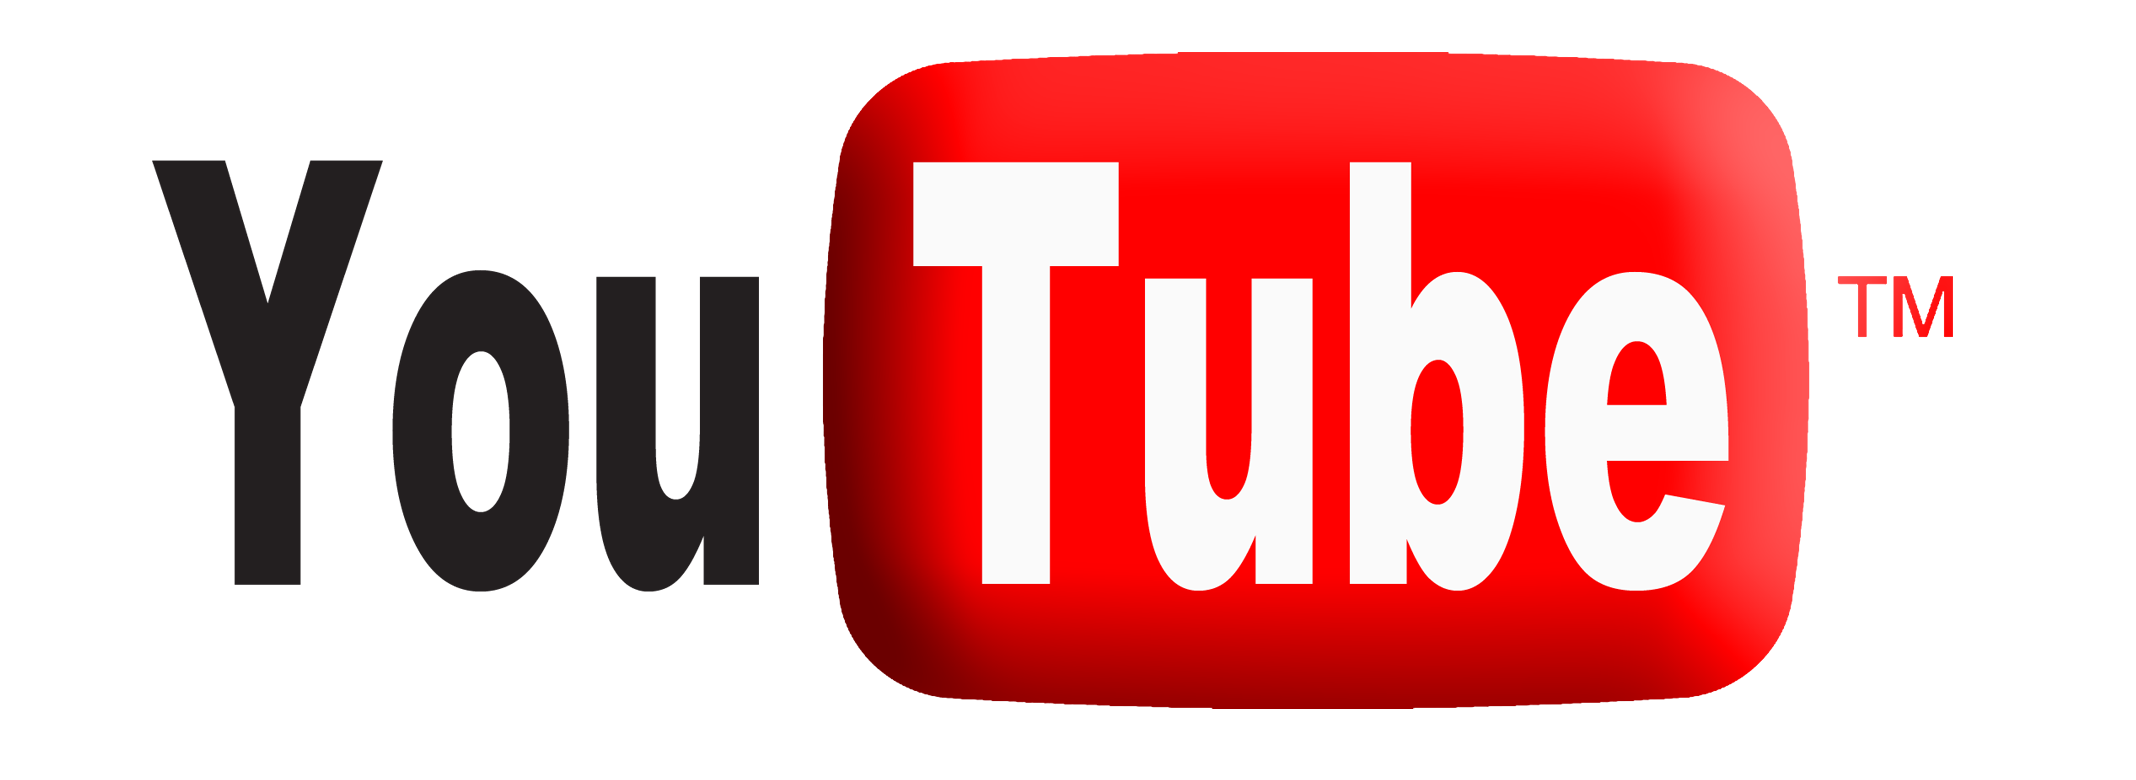 Youtube logo PNG - Subscribe HD PNG